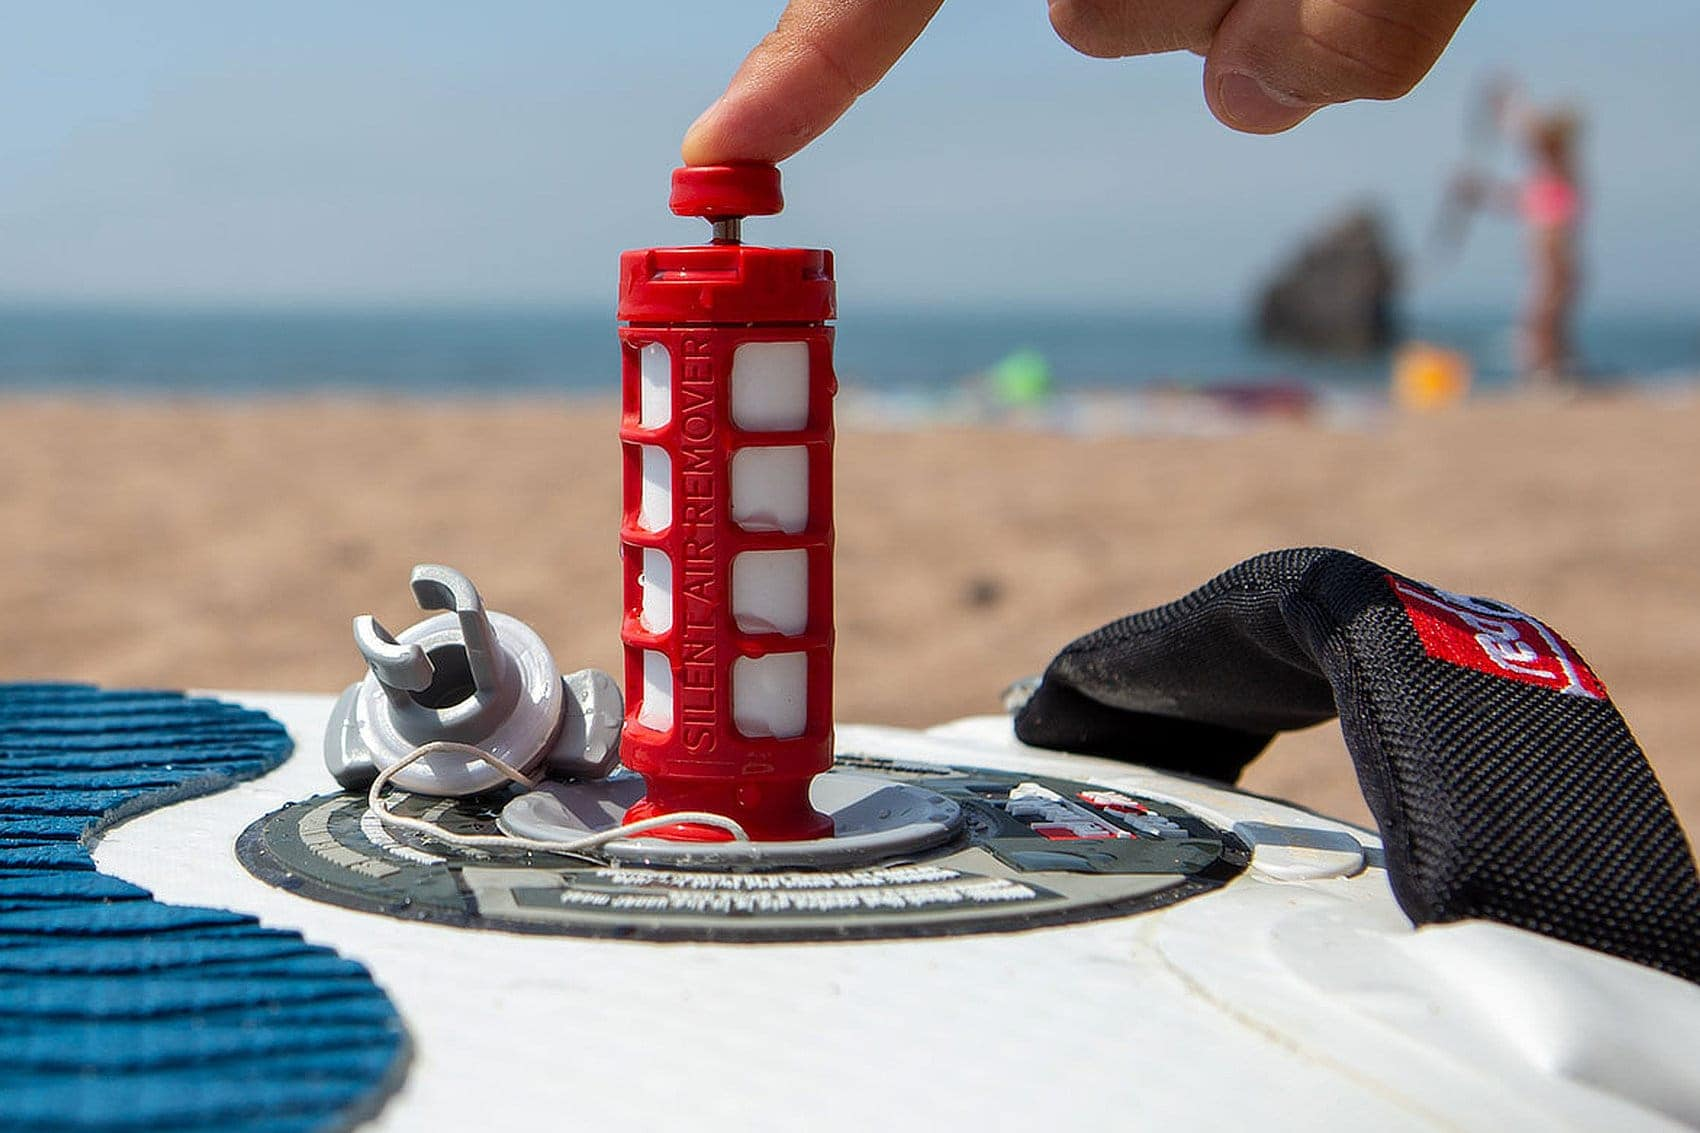 Red Paddle Silent Air Remover SUP Accessory